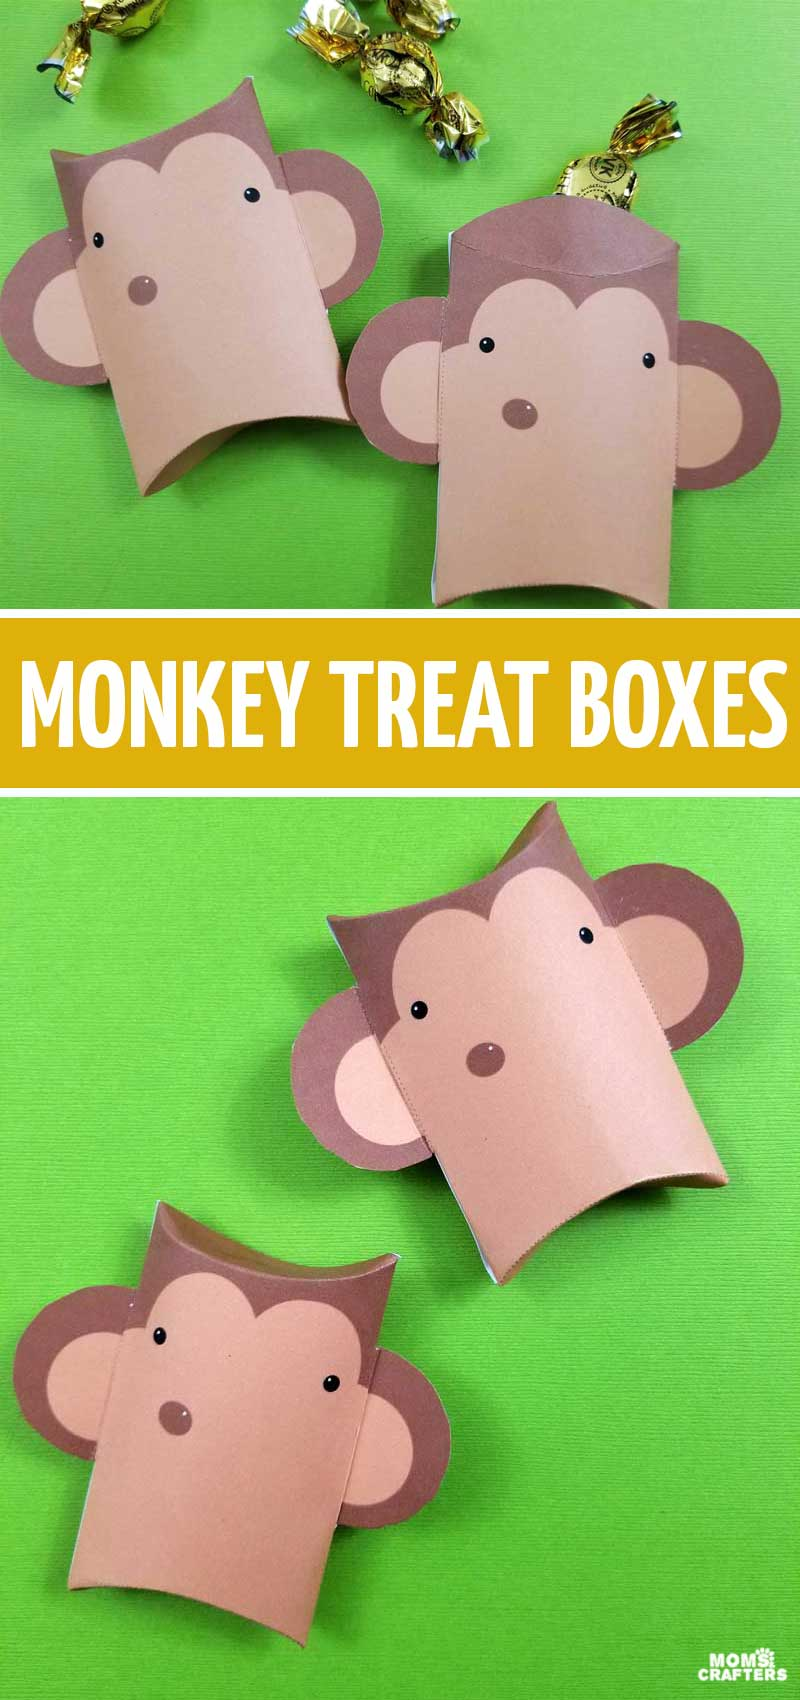 Click to download these monkey party favor boxes - fun paper pillow boxes to use as treat boxes at a monkey birthday party! These fun monkey goody bag ideas are so adorable!